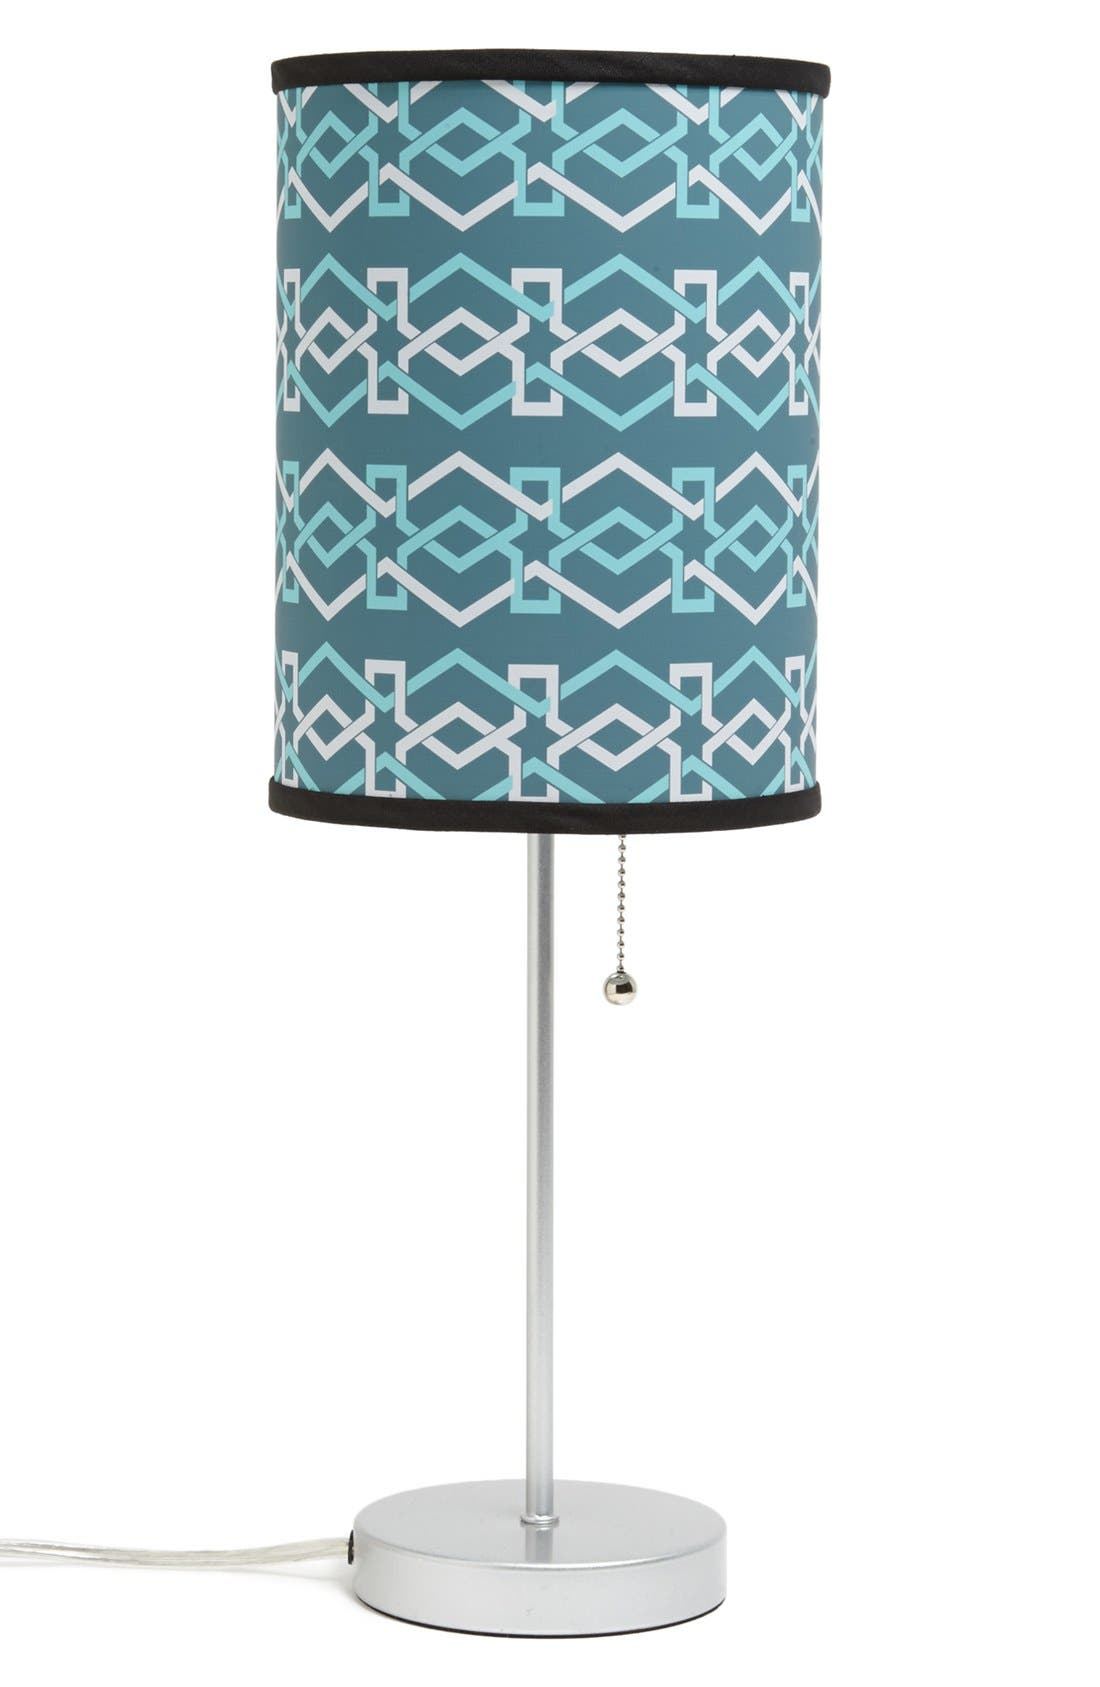 Main Image - LAMP-IN-A-BOX Zigzag Table Lamp